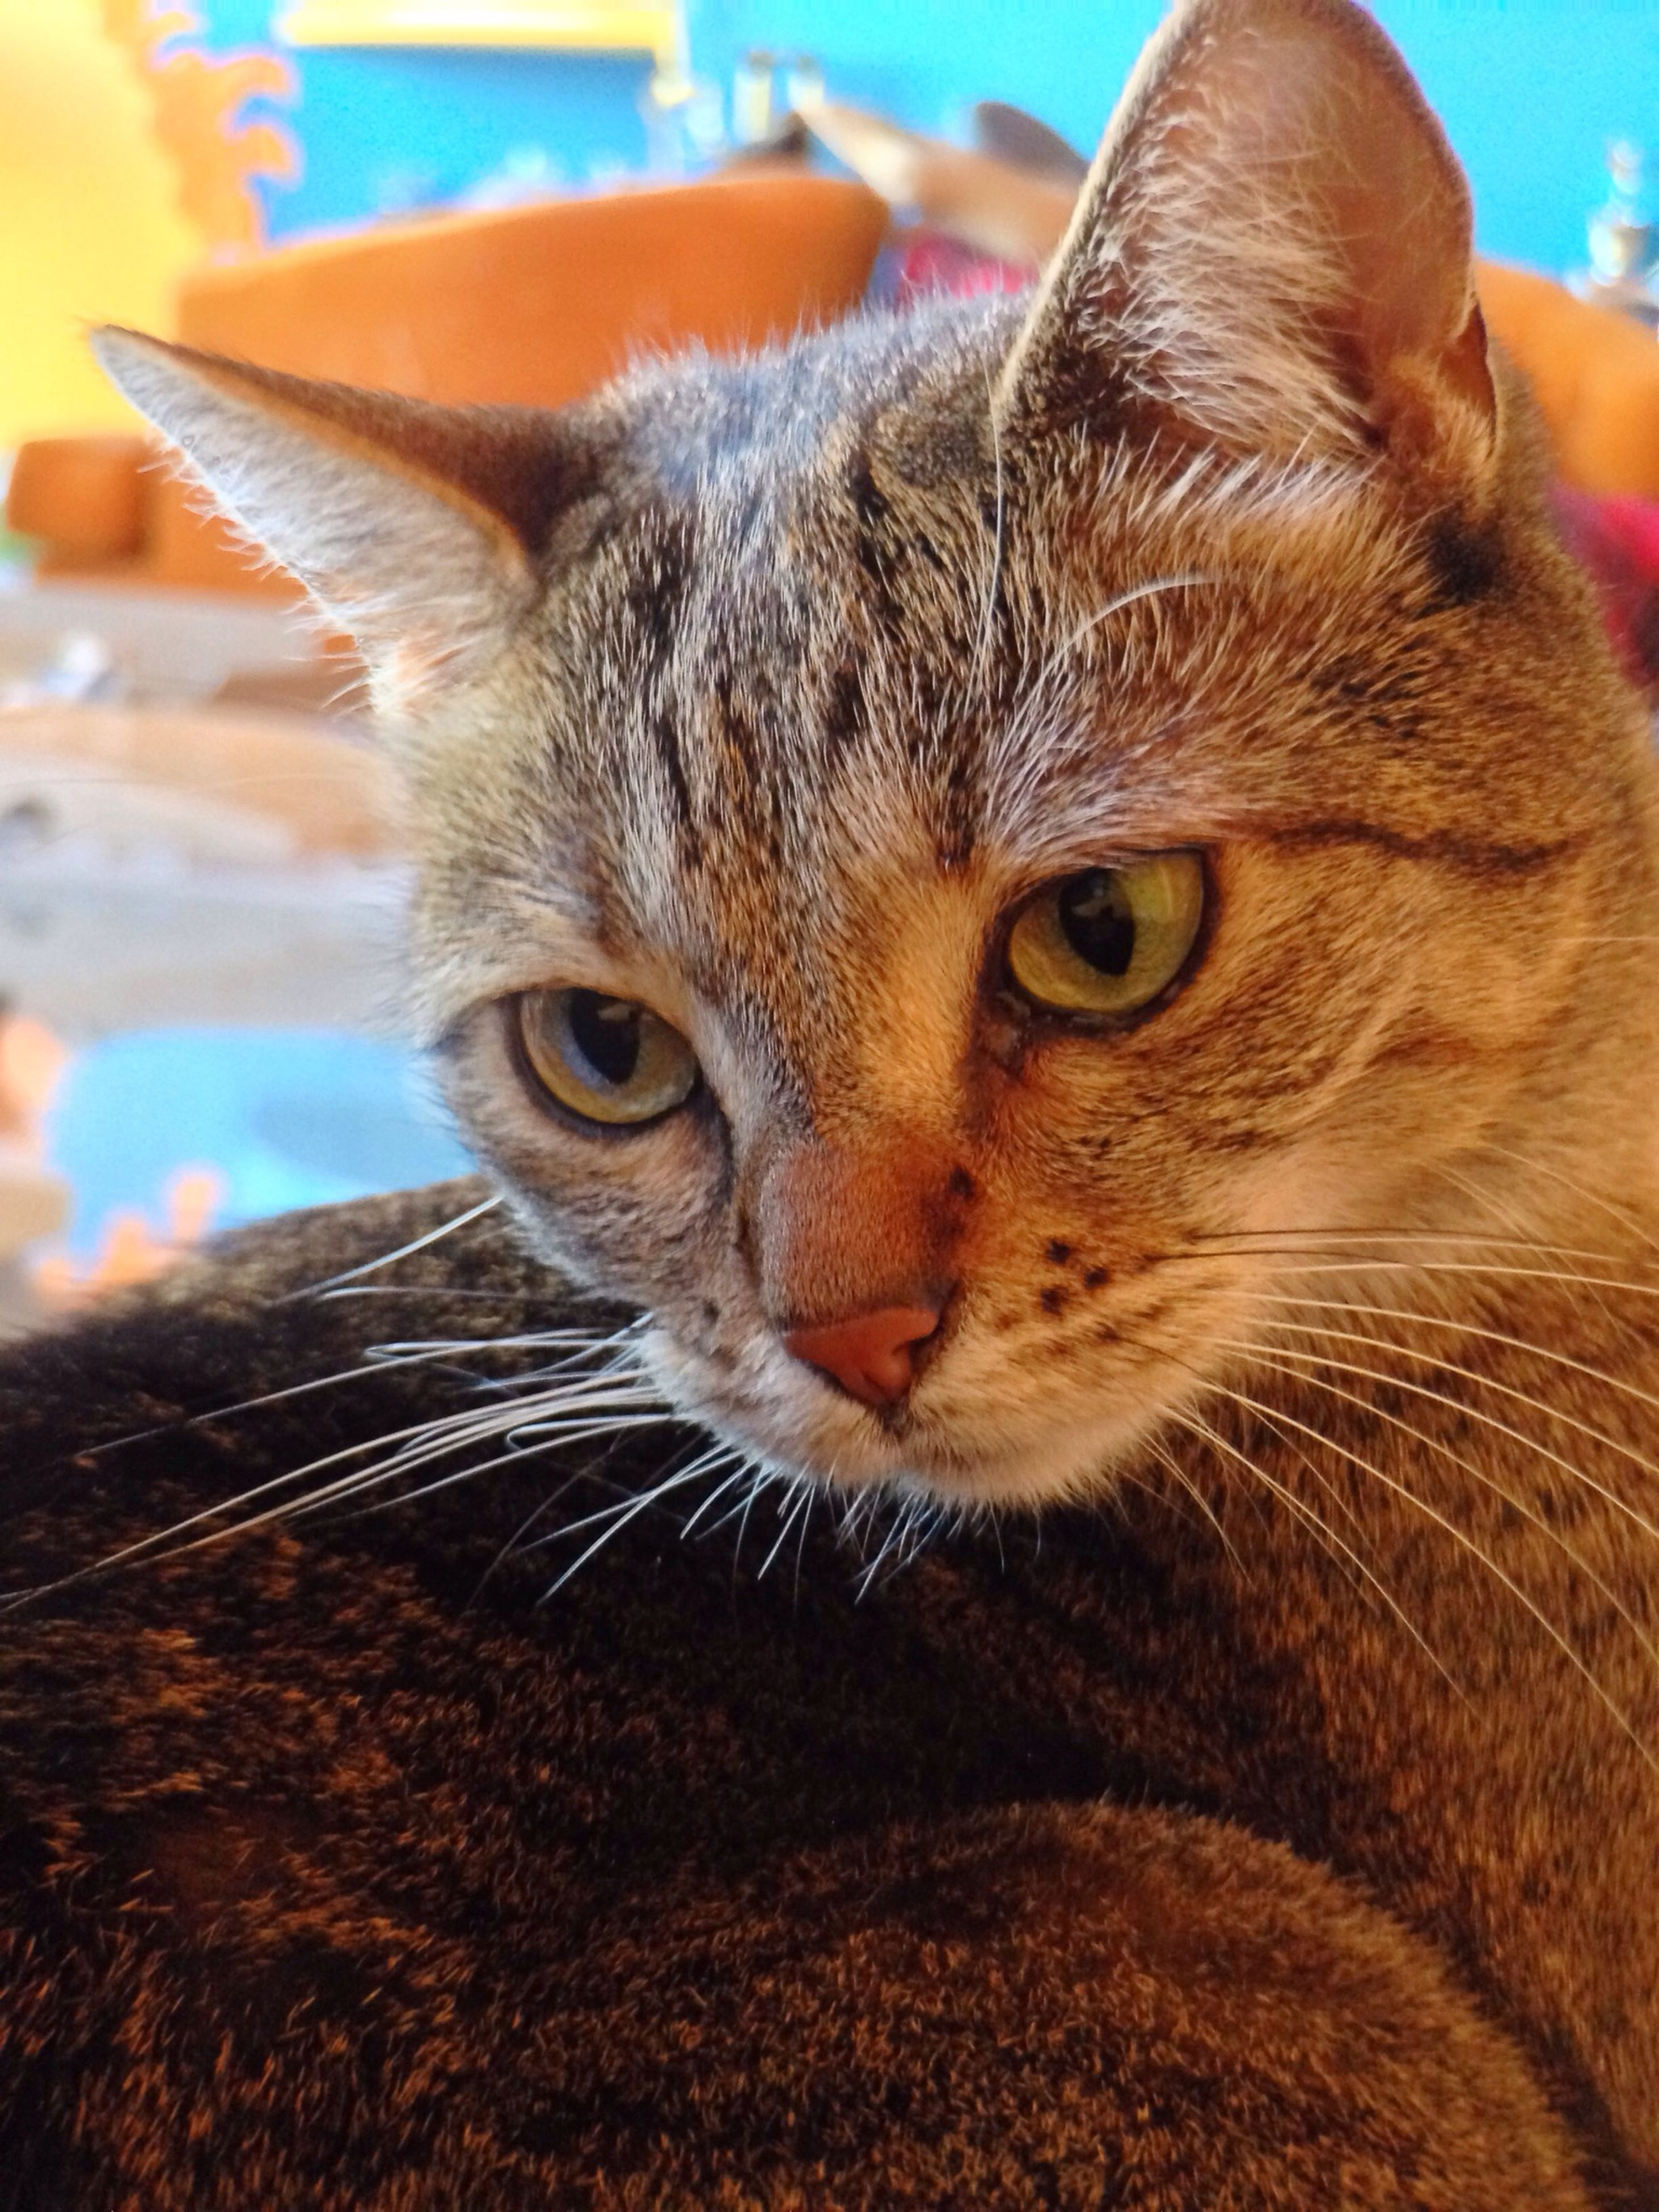 domestic cat, one animal, cat, pets, domestic animals, animal themes, feline, whisker, mammal, portrait, close-up, looking at camera, animal head, animal eye, focus on foreground, alertness, staring, front view, no people